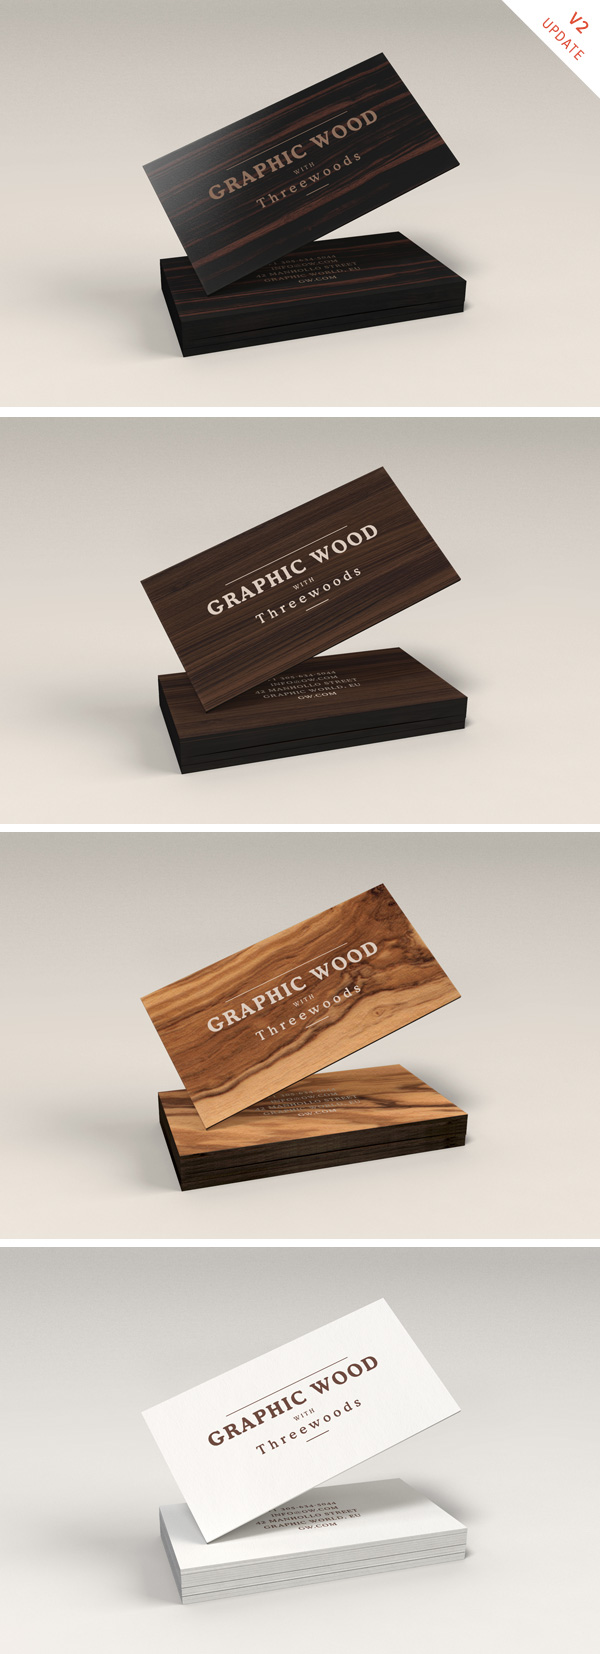 Wooden business cards mockup graphicburger wooden business cards mockup reheart Image collections